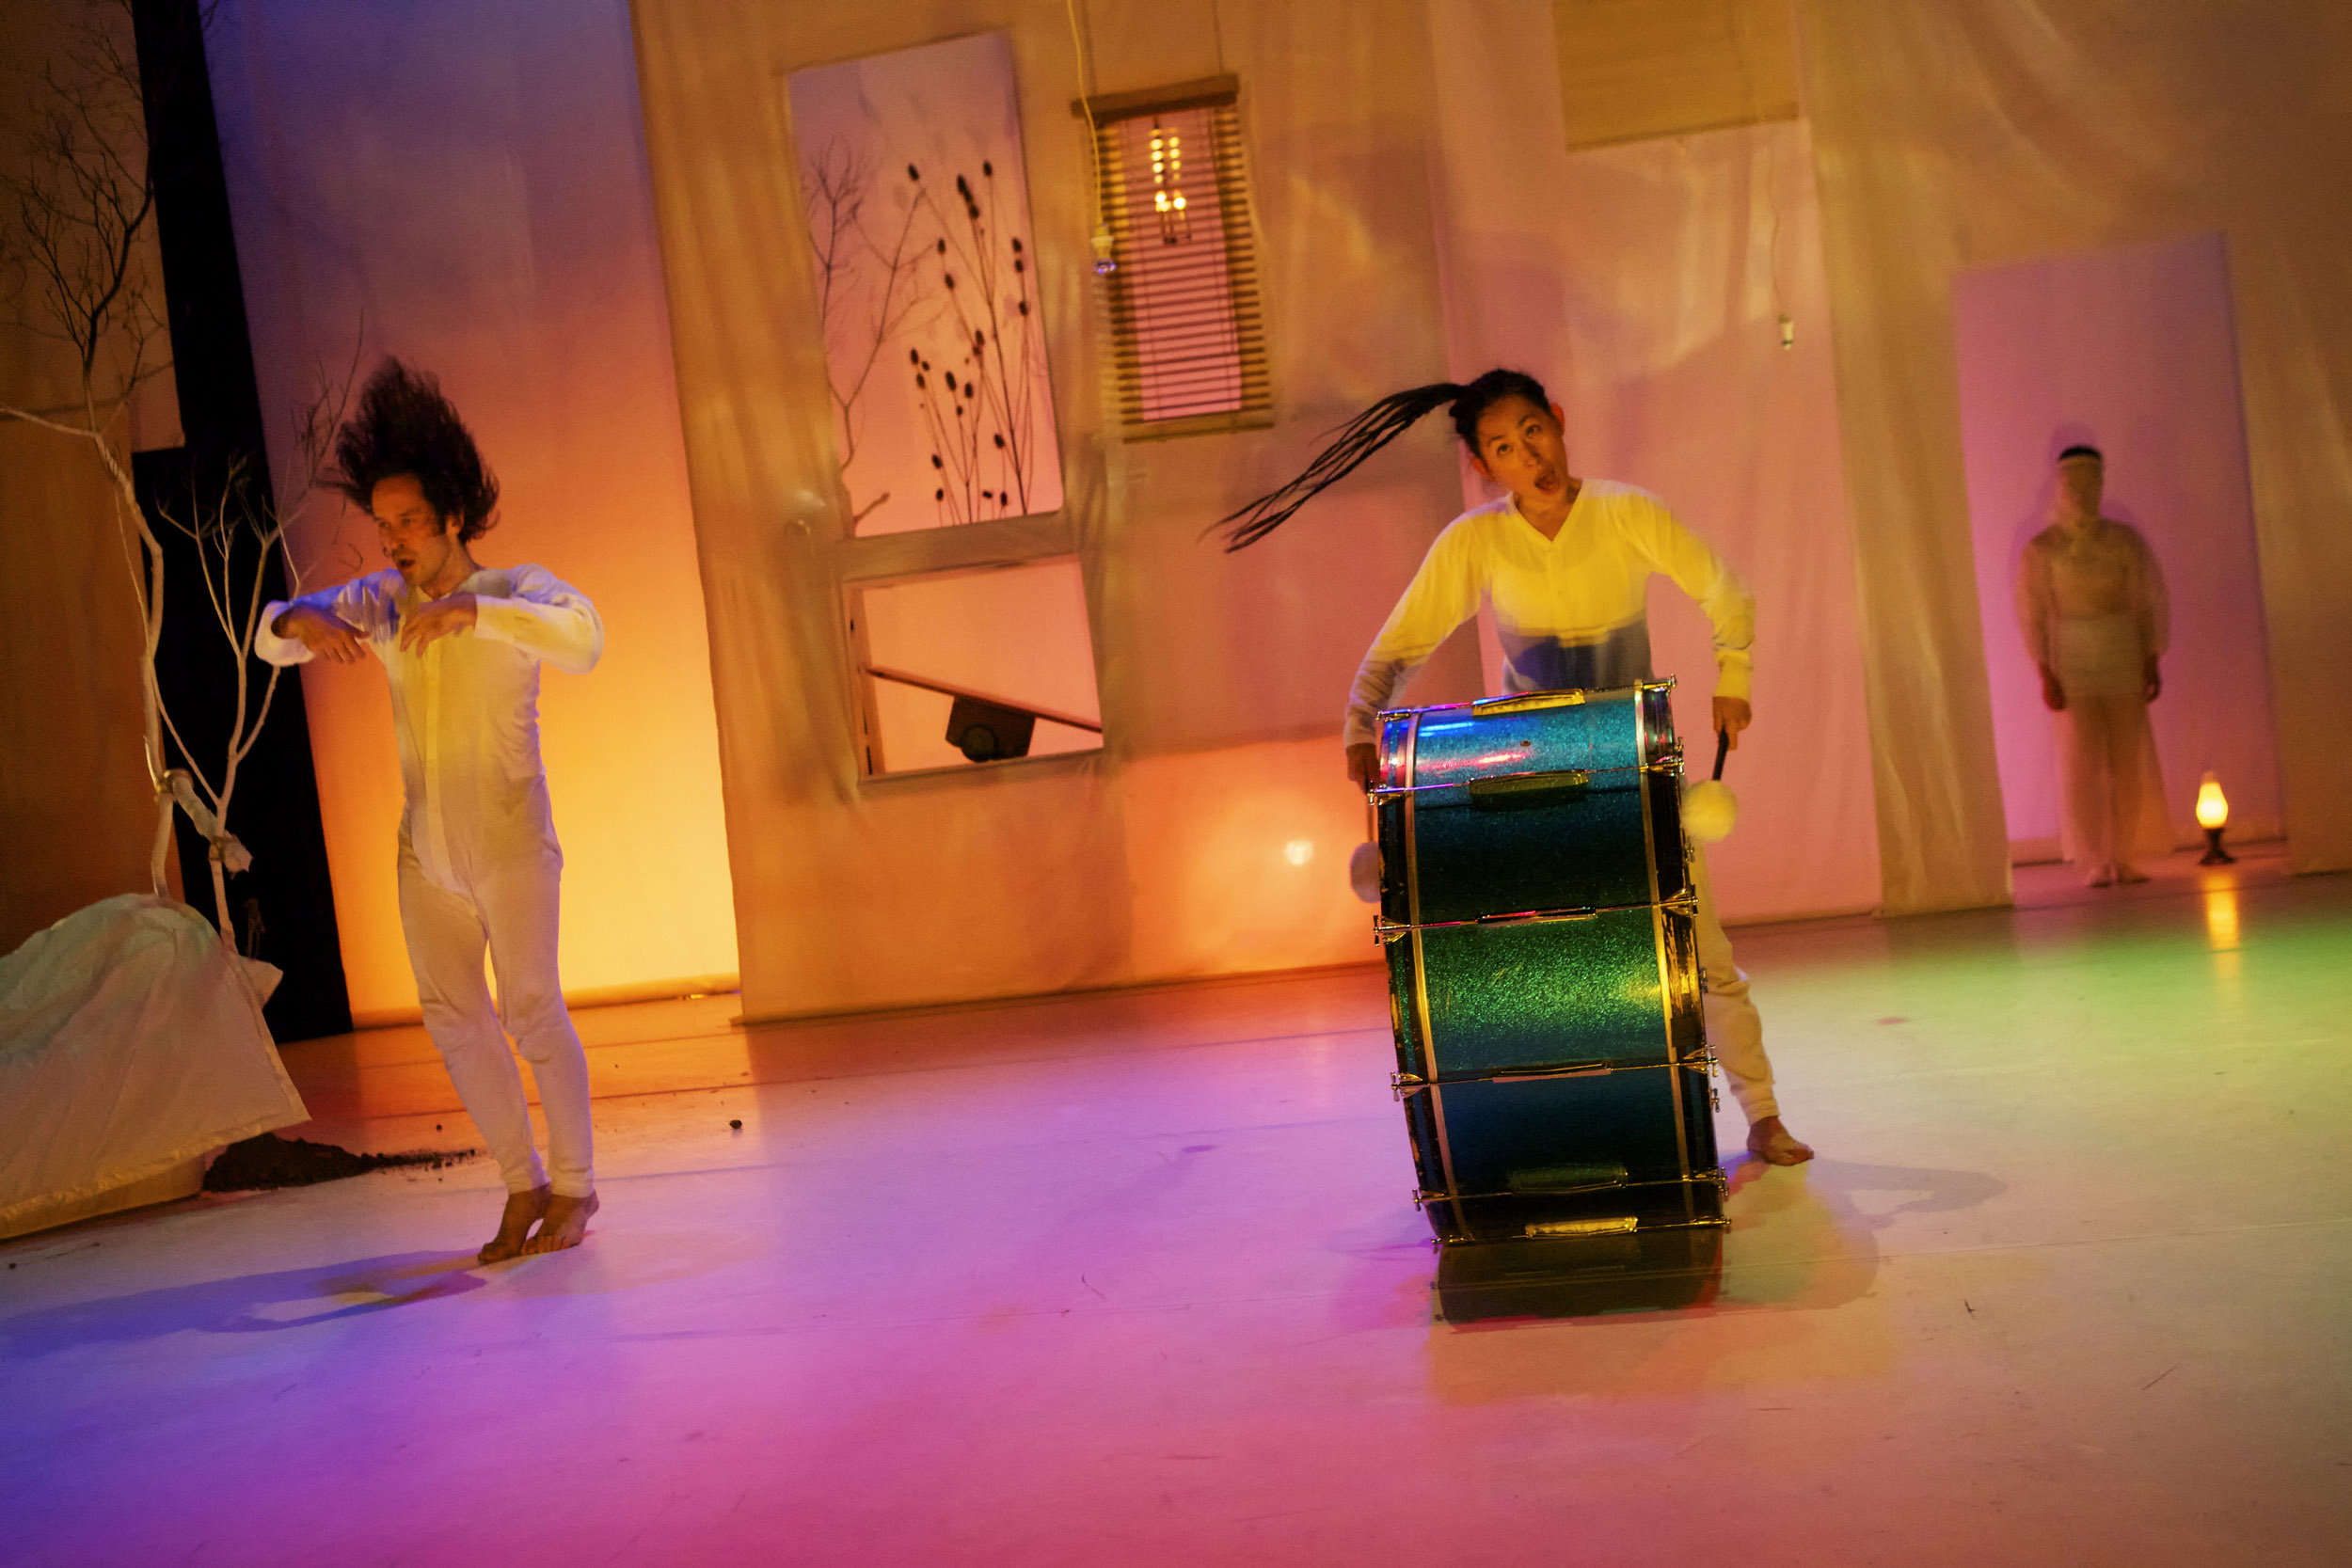 line-between-inkboat-odc-theater-allen-willner-lighting-.jpg